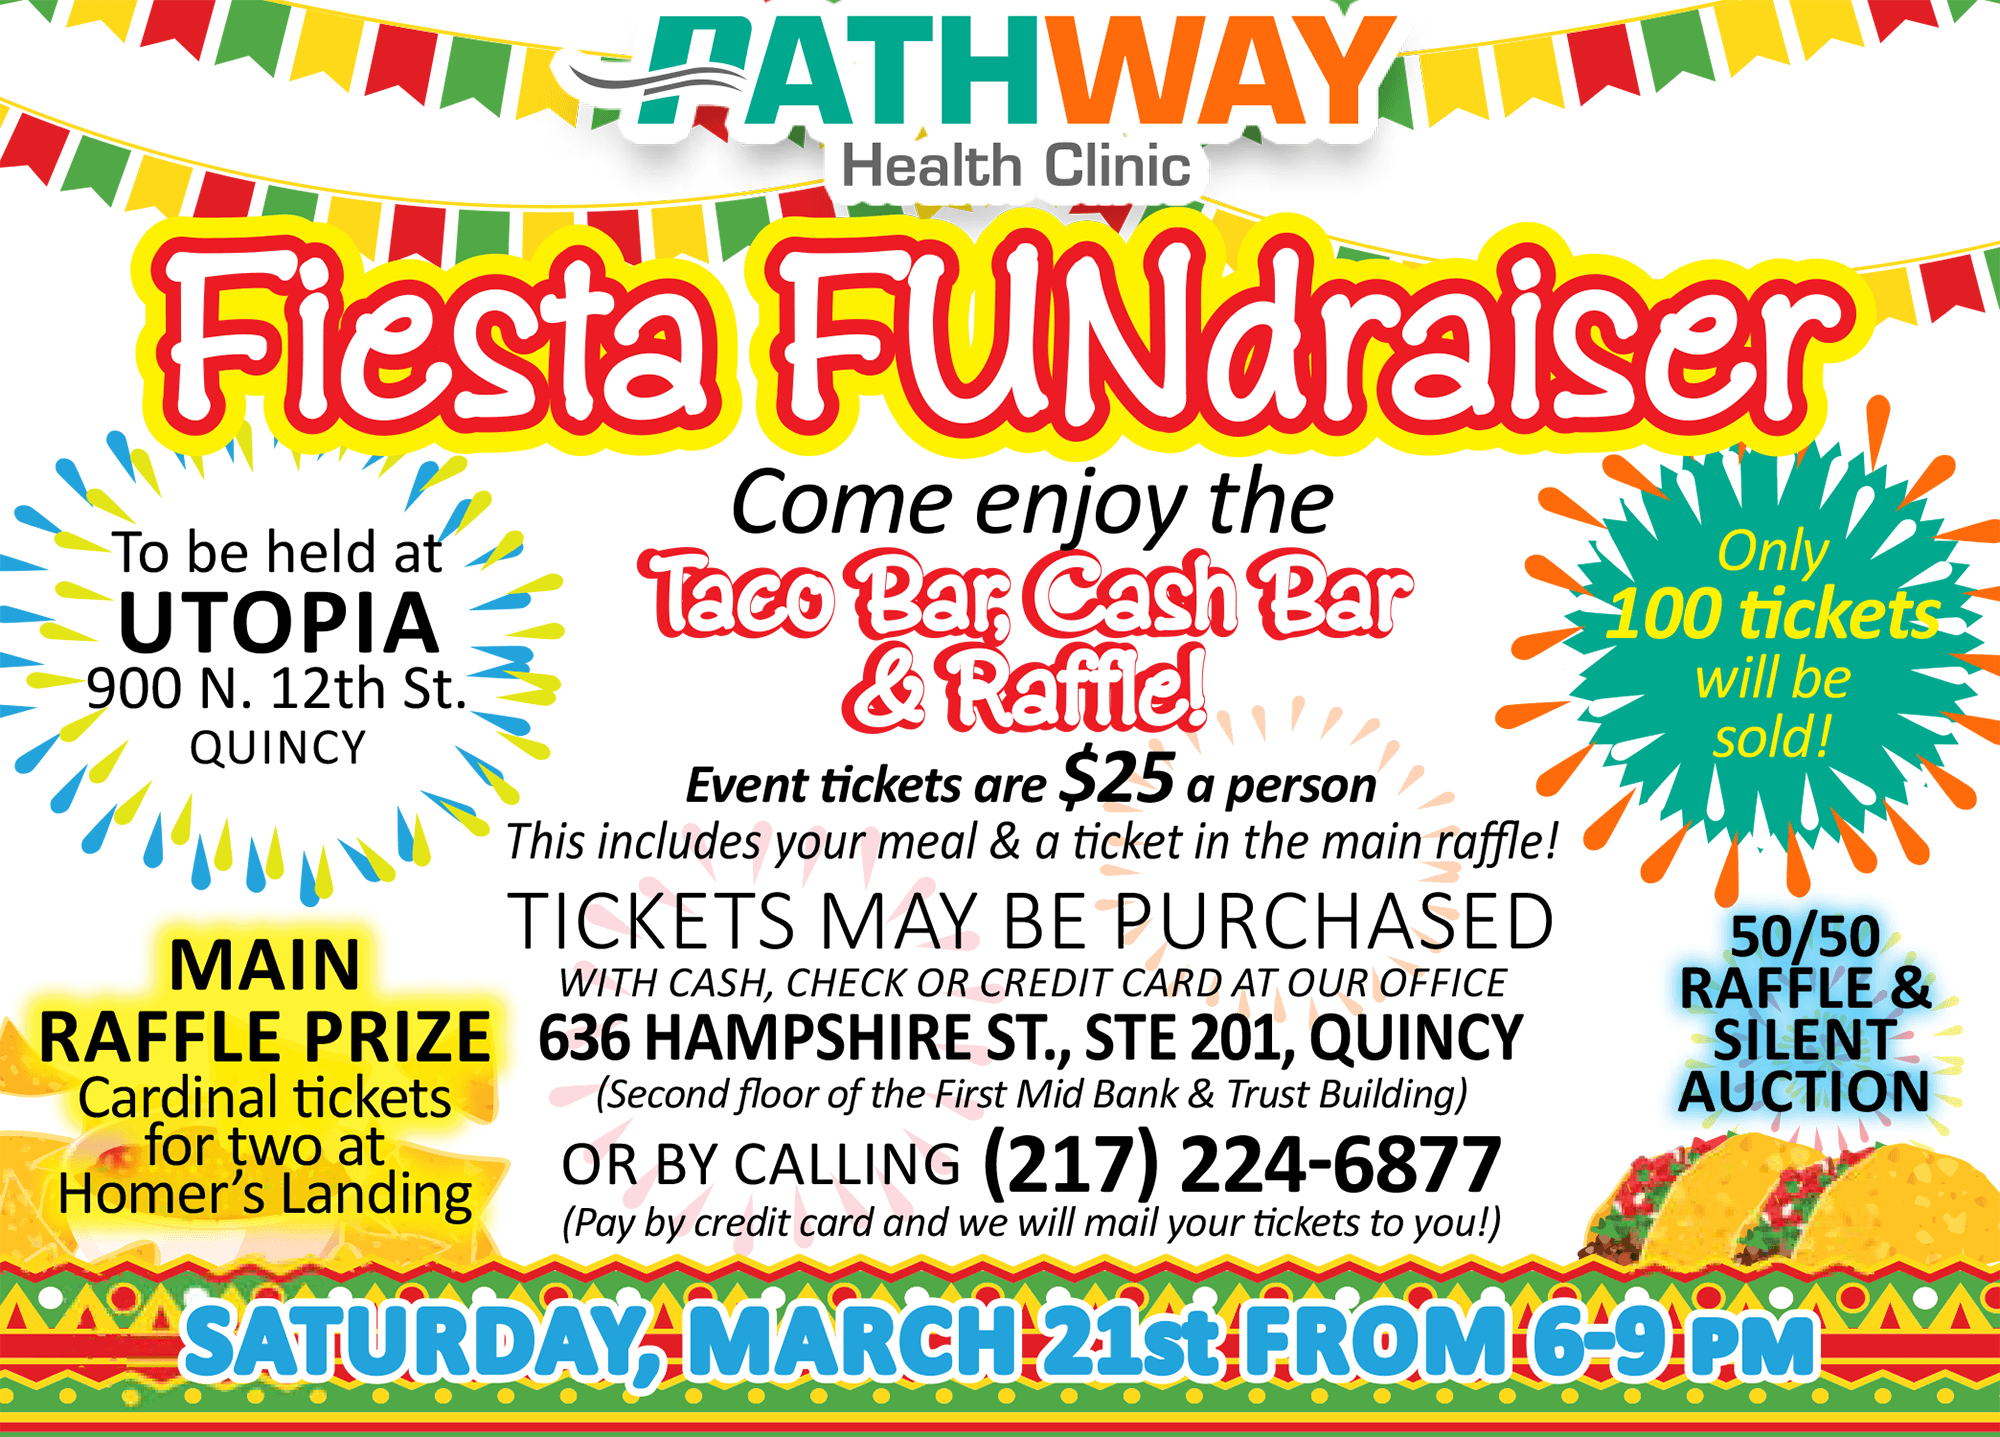 Pathway Health Clinic Fiesta Fundraiser Event Flyer